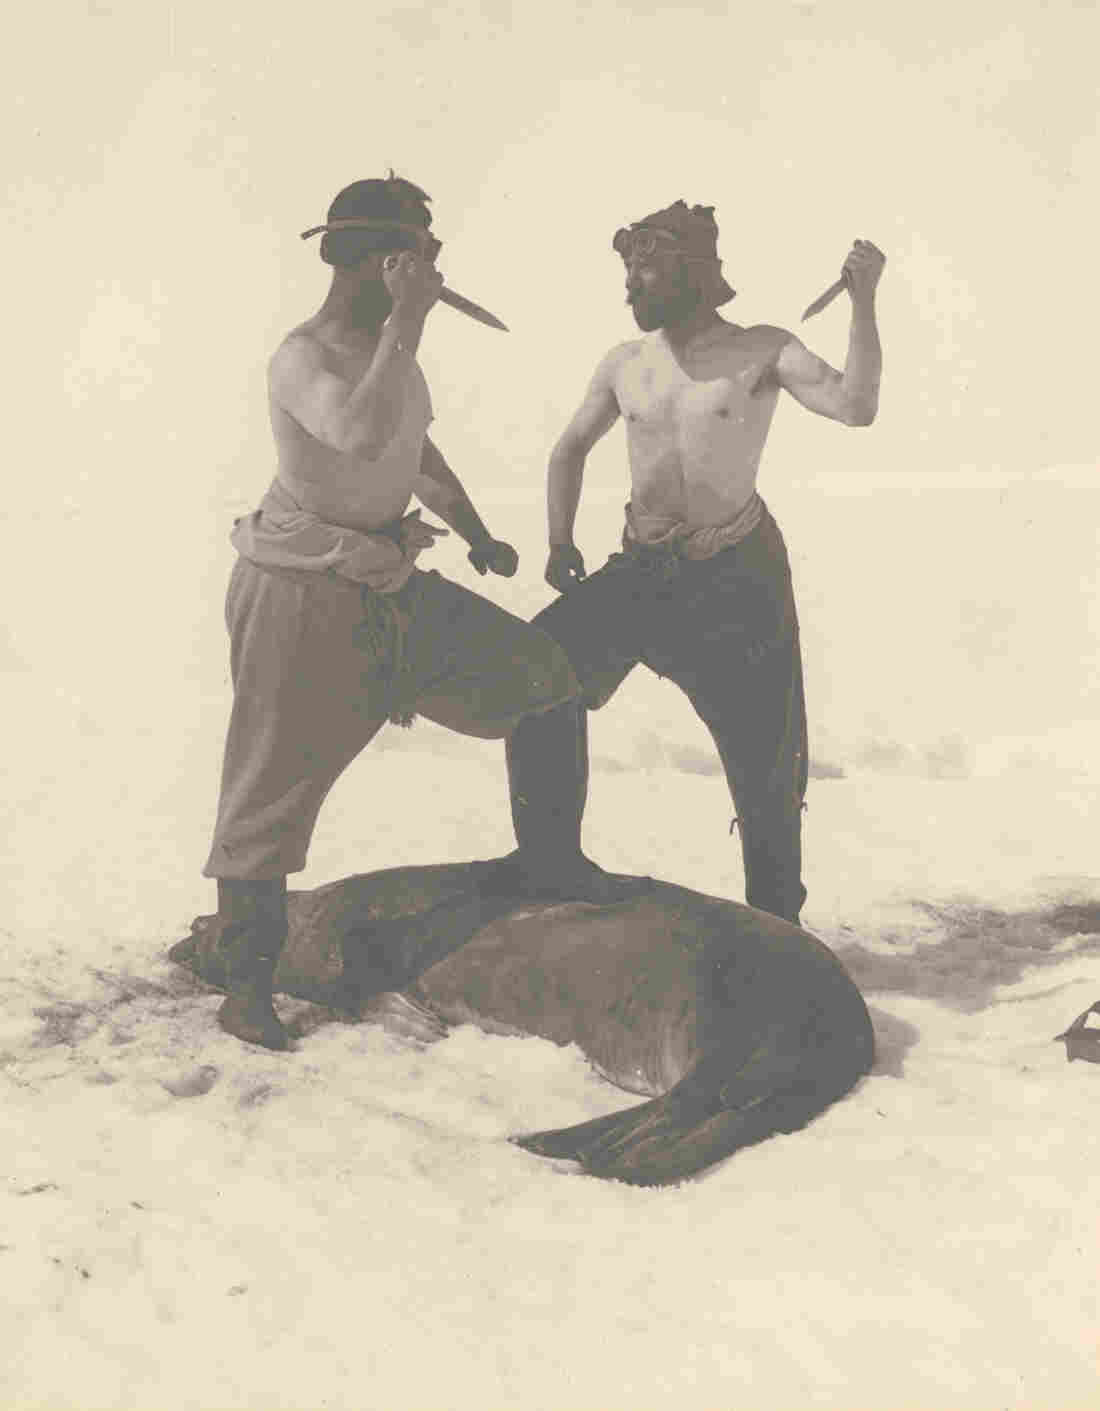 Frank Wild — Ernest Shackleton's second-in-command on the Endurance voyage — and M.H. Moyes slay a Weddell seal.